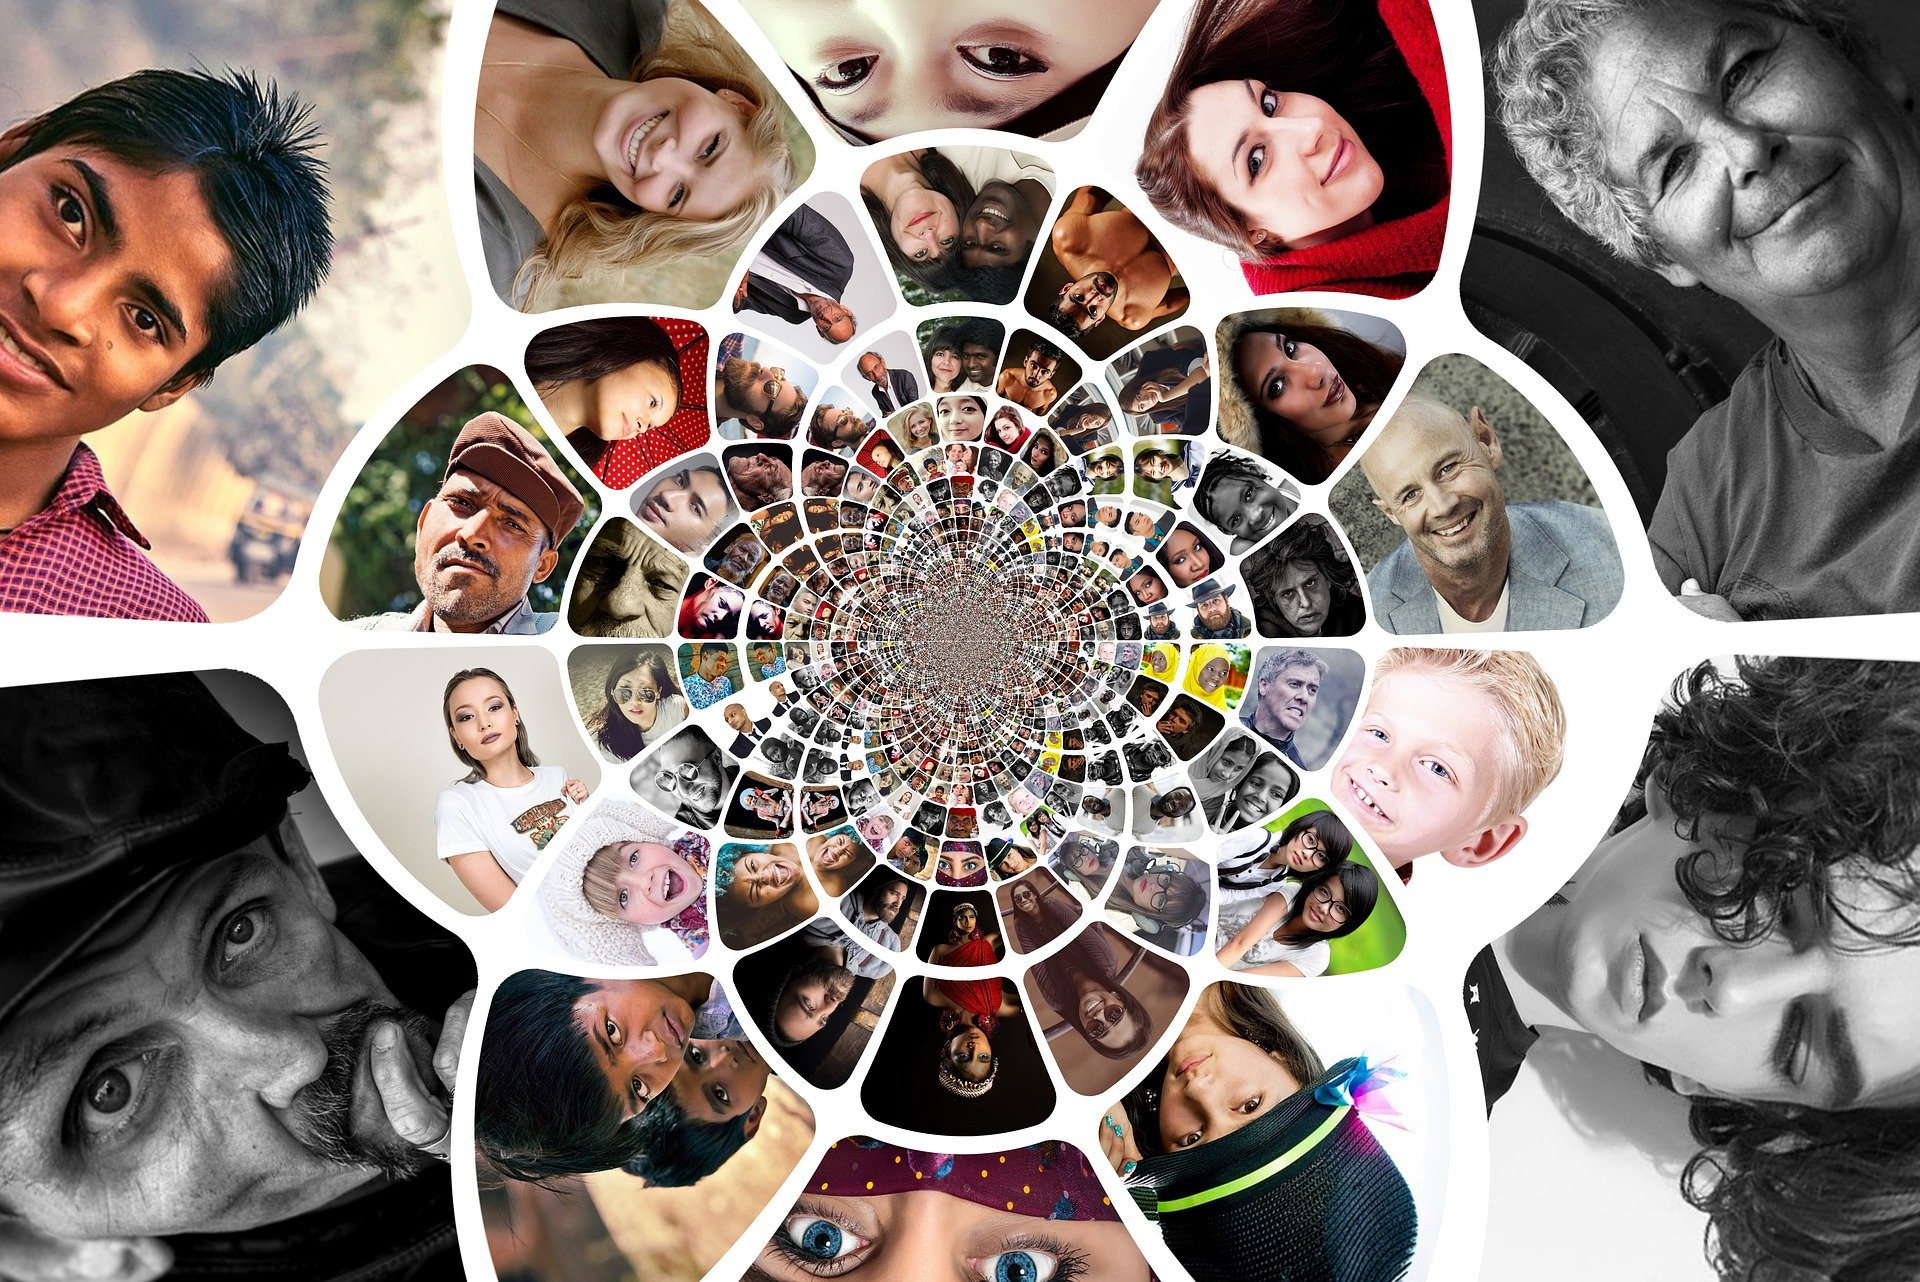 swirling photo collage of individual faces